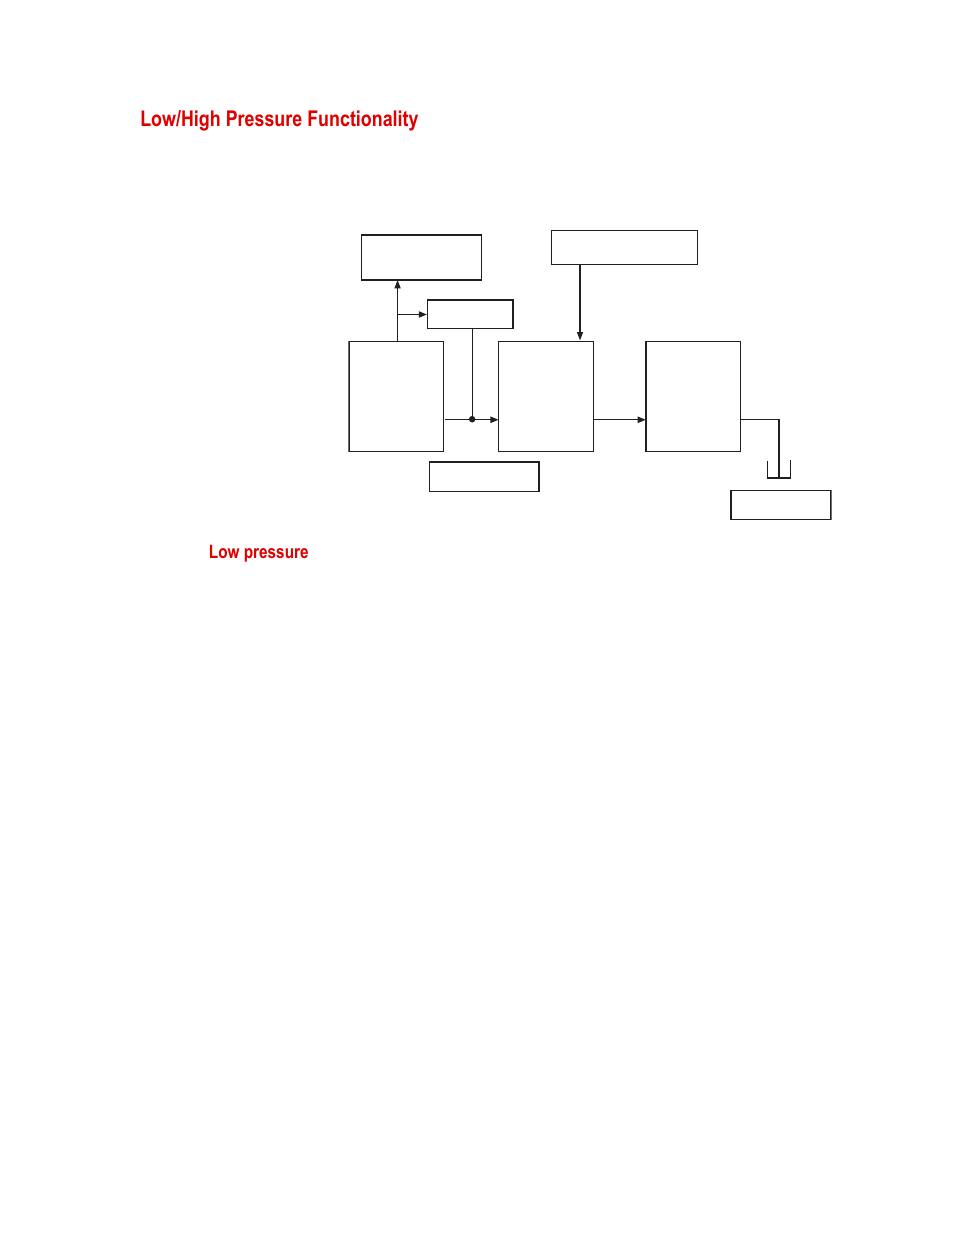 Low High Pressure Functionality 51 Basic Hydraulic System Diagram Troubleshooting Tips For Mts Series 505 Silentflo Power Unit Model 30 User Manual Page 90